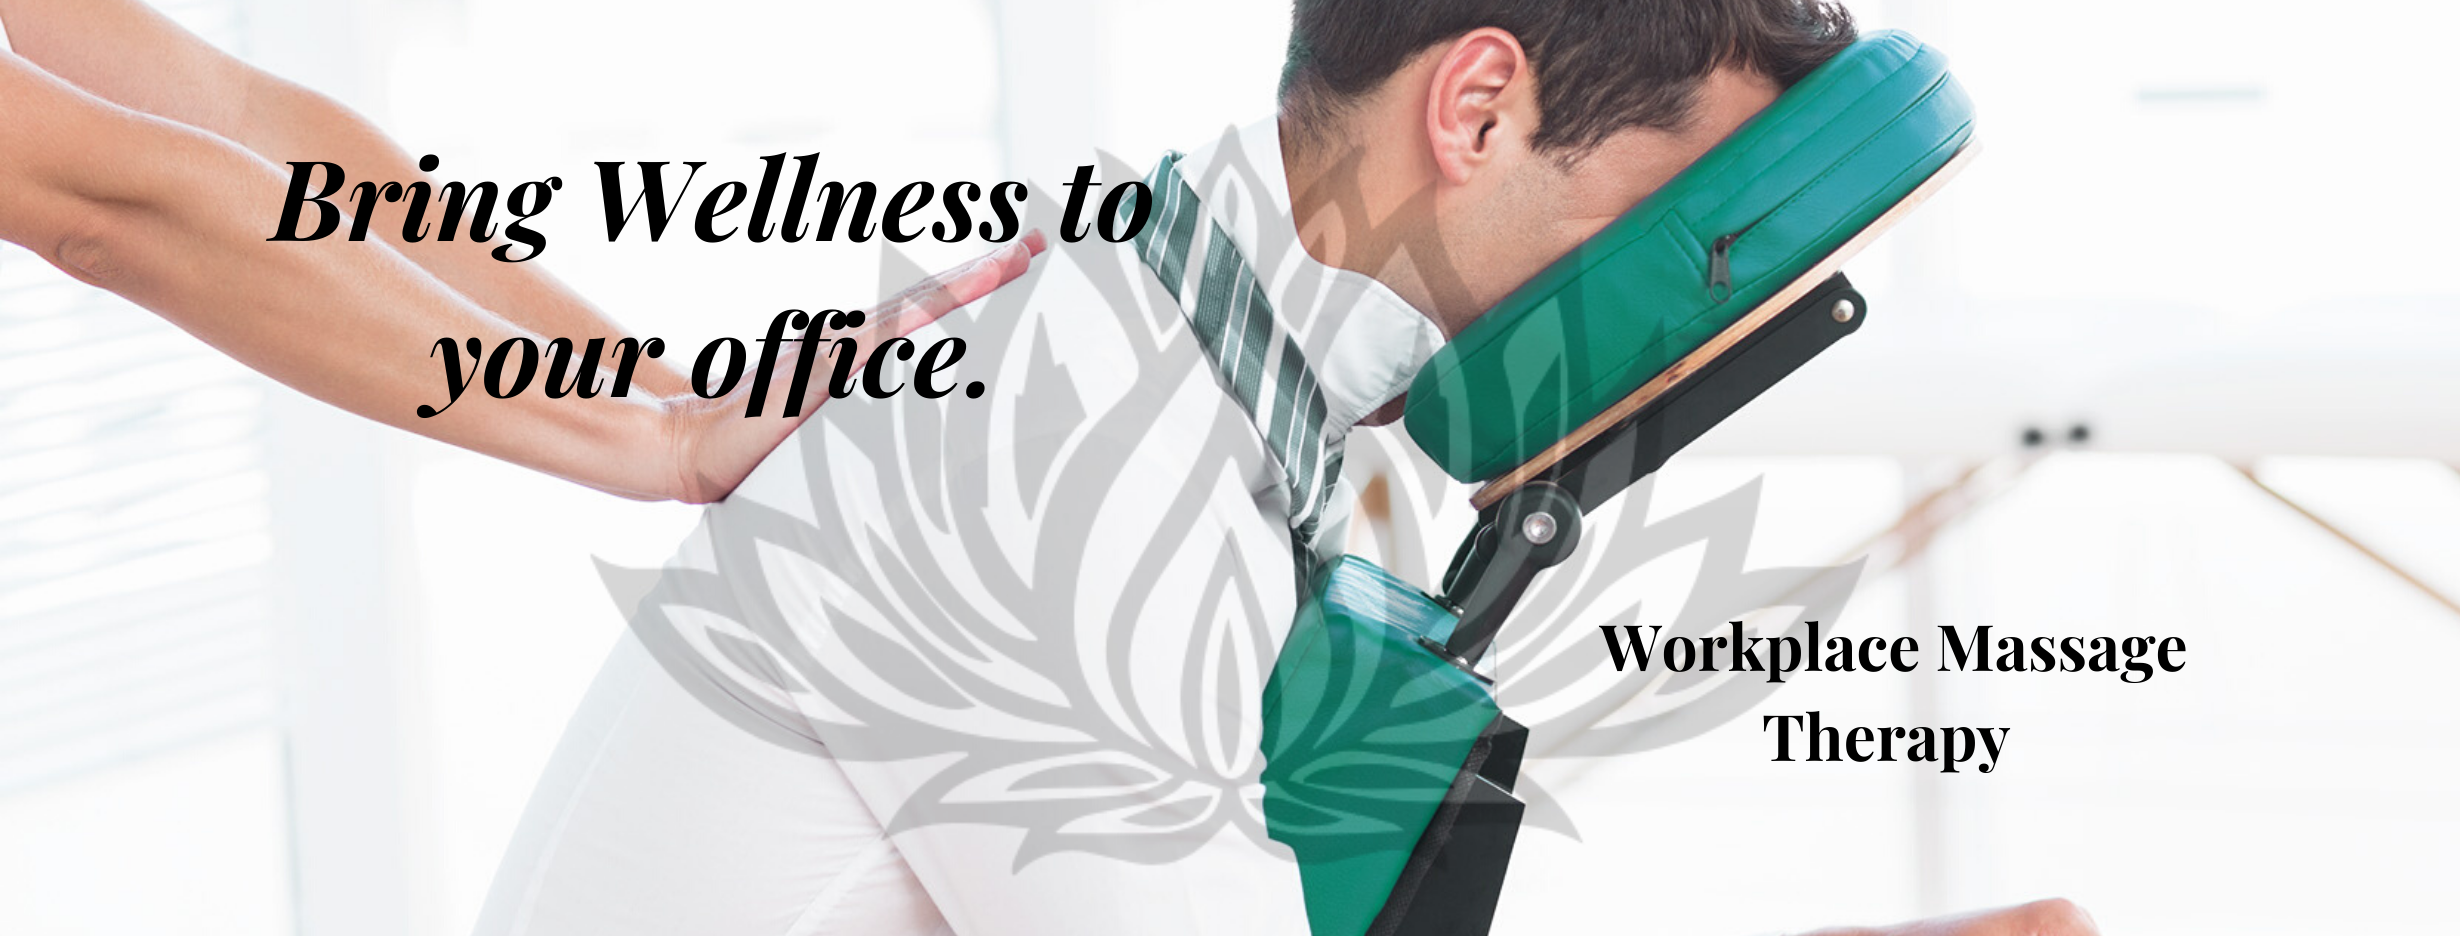 Workatreat Workplace Massage Therapy